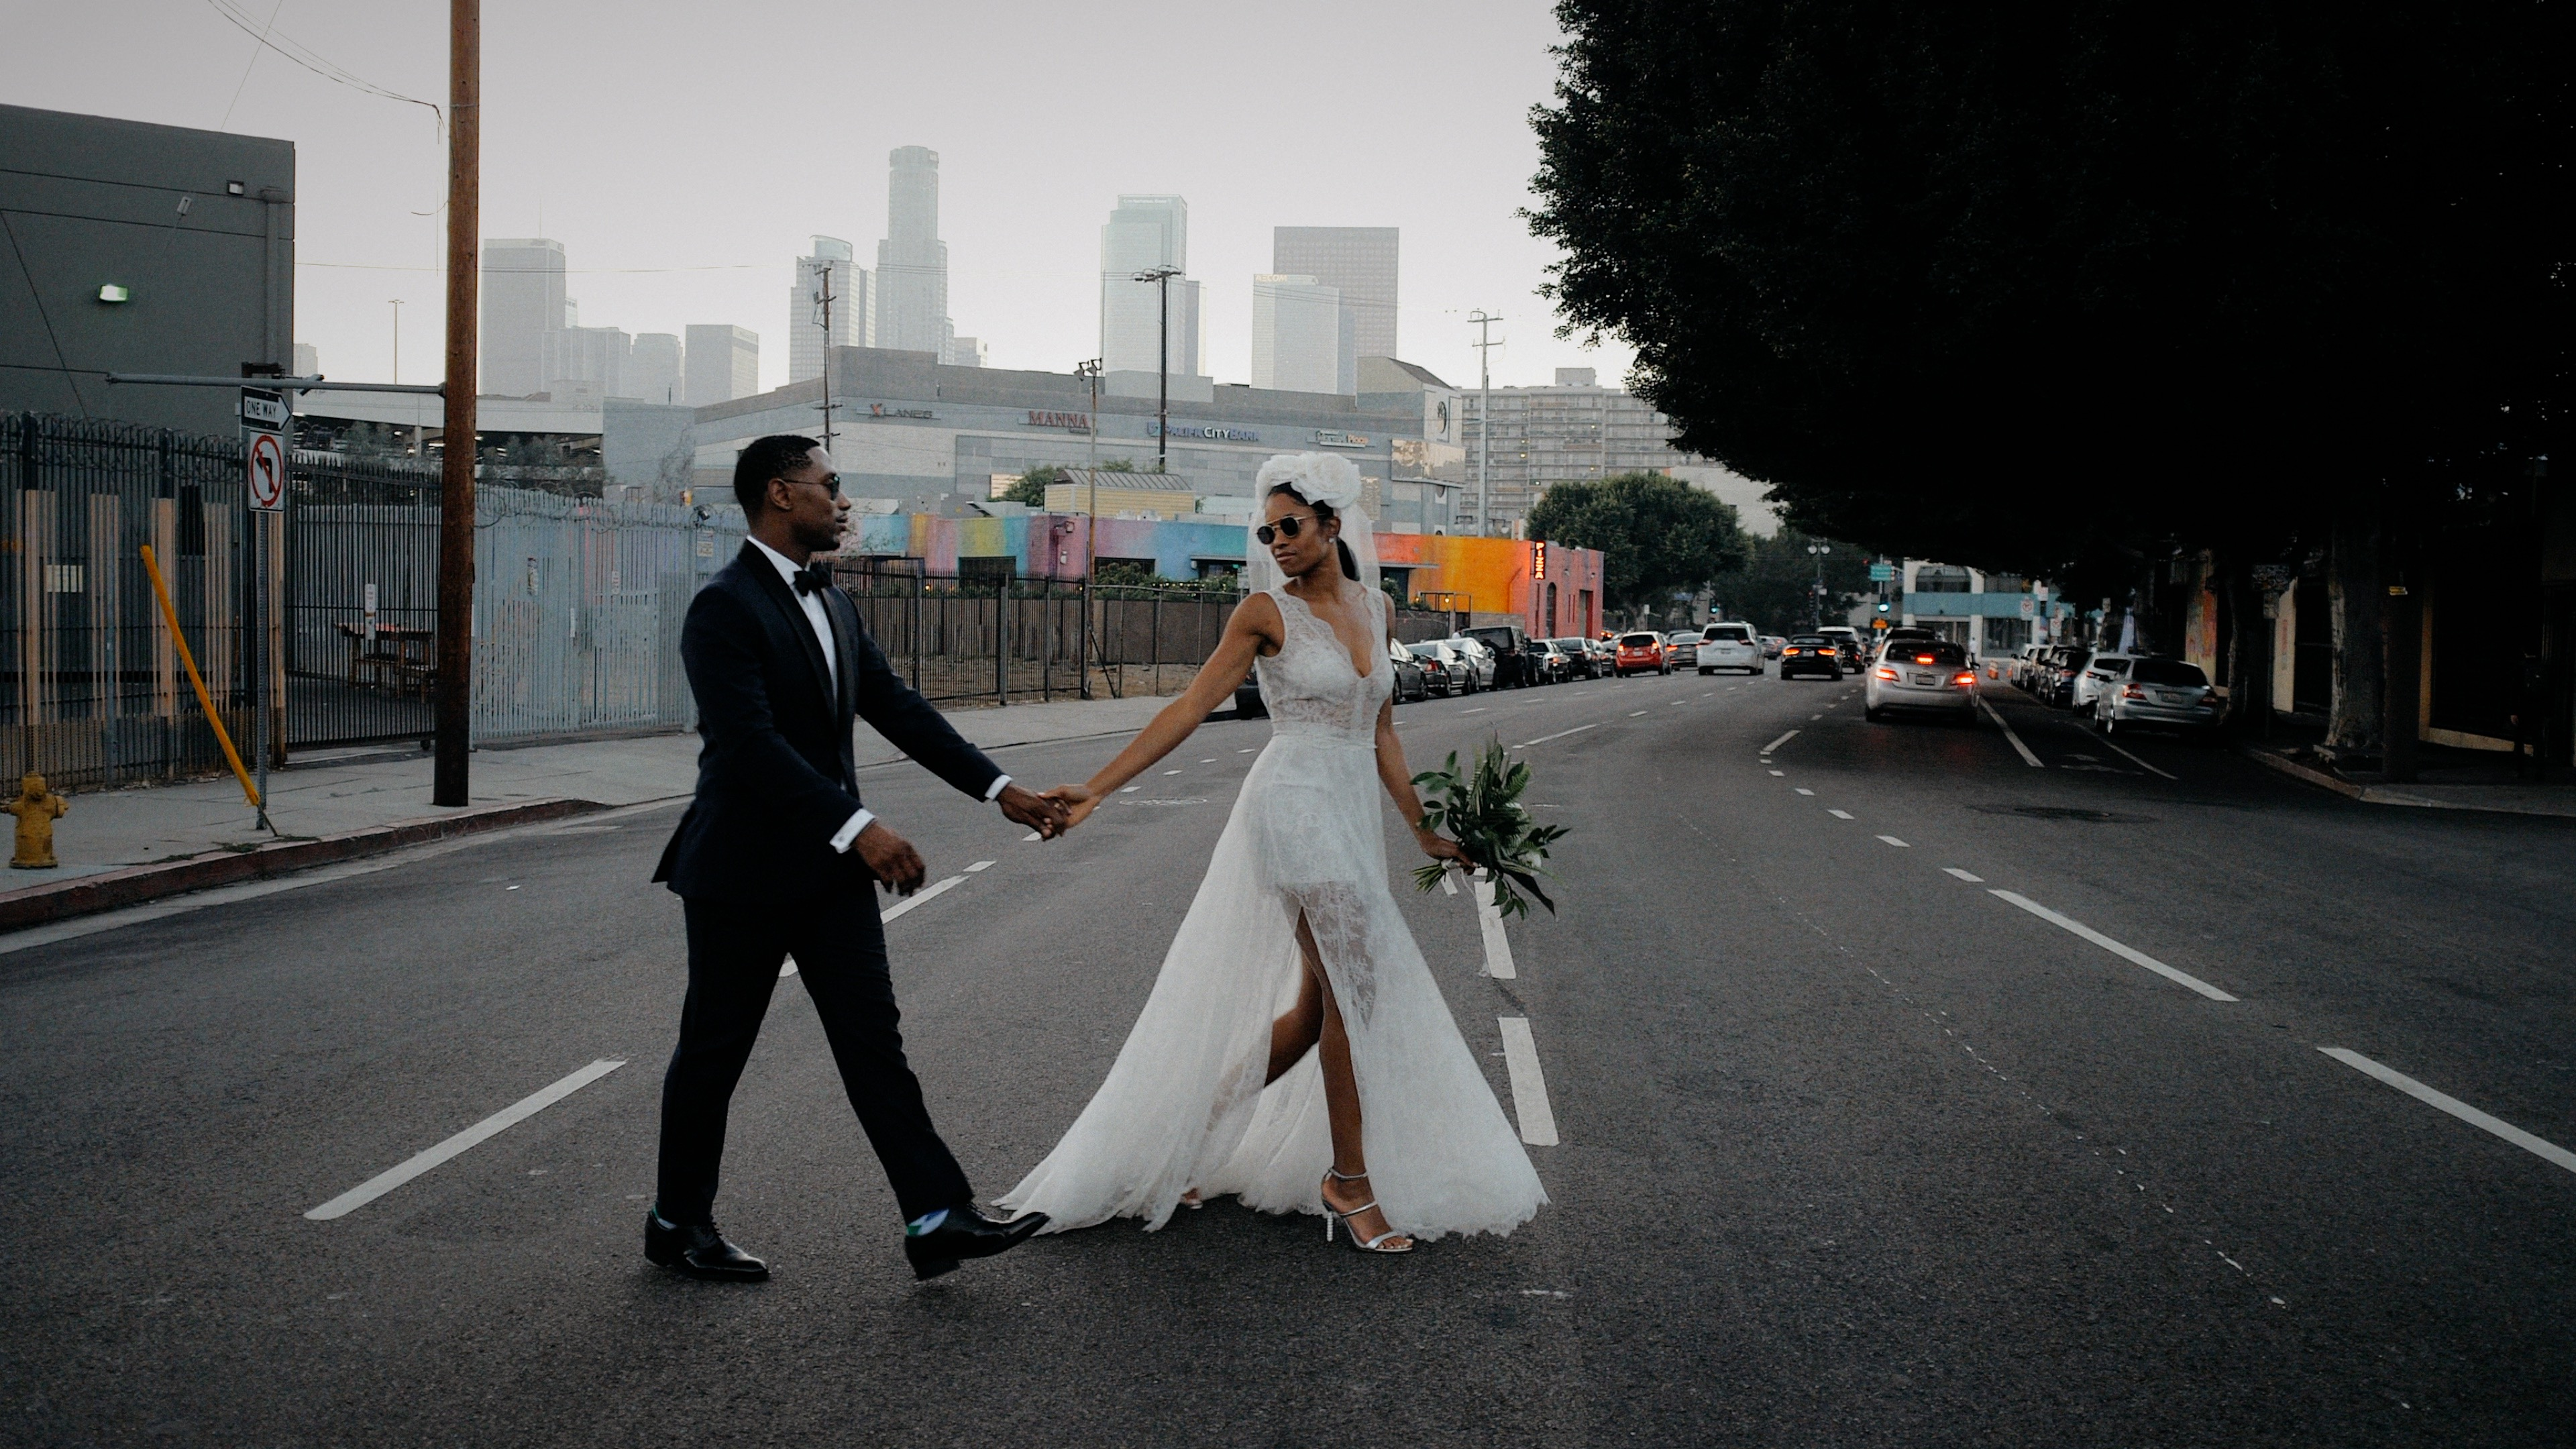 Leslie + Xuan | Los Angeles, California | Millwick